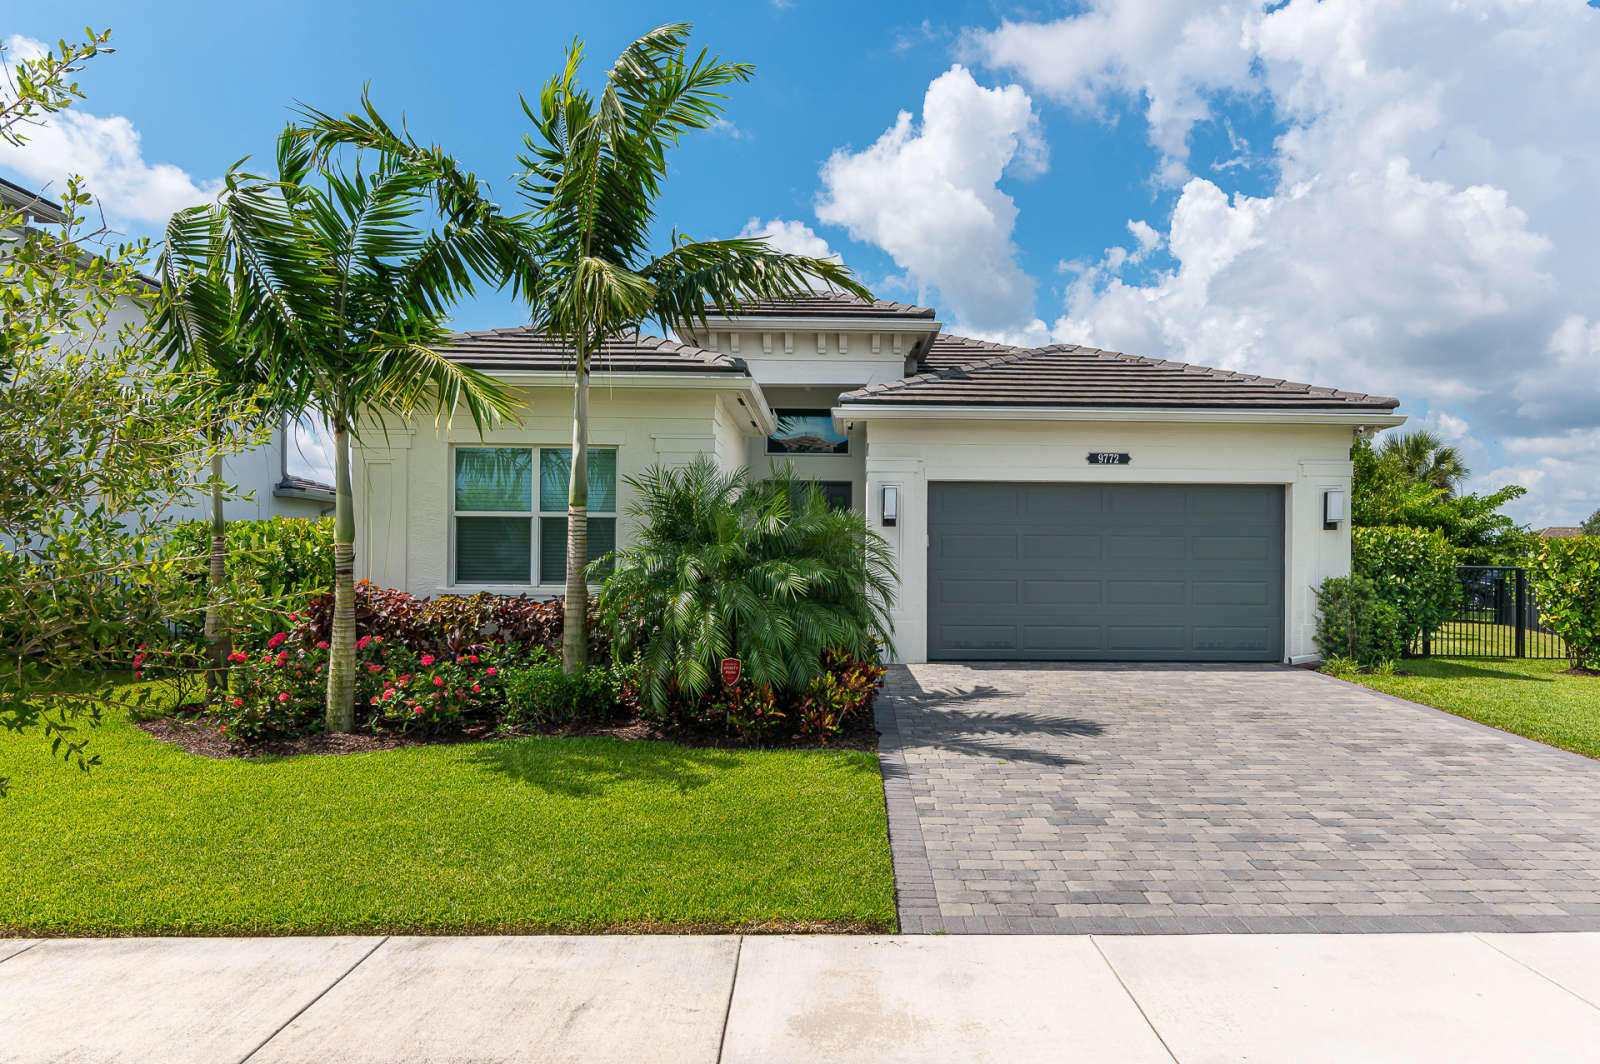 9772 Celtic Sea Lane Delray Beach, FL 33446